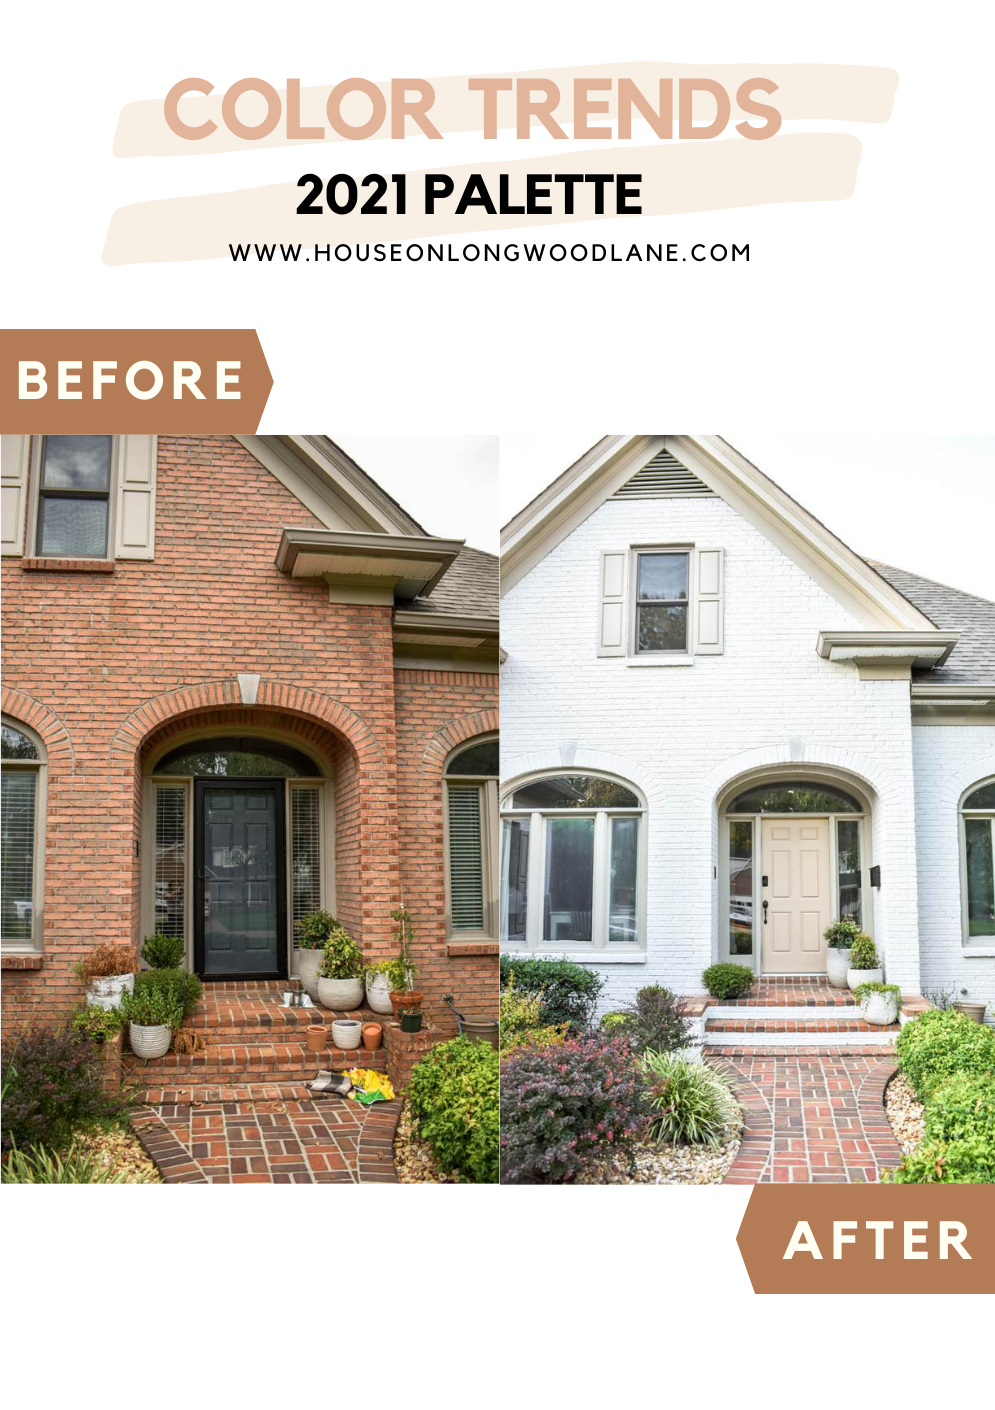 Painting Our Homes Exterior With Behr Color Trends 2021 Palette House On Longwood Lane Exterior House Color Brick Exterior House Behr Exterior Paint